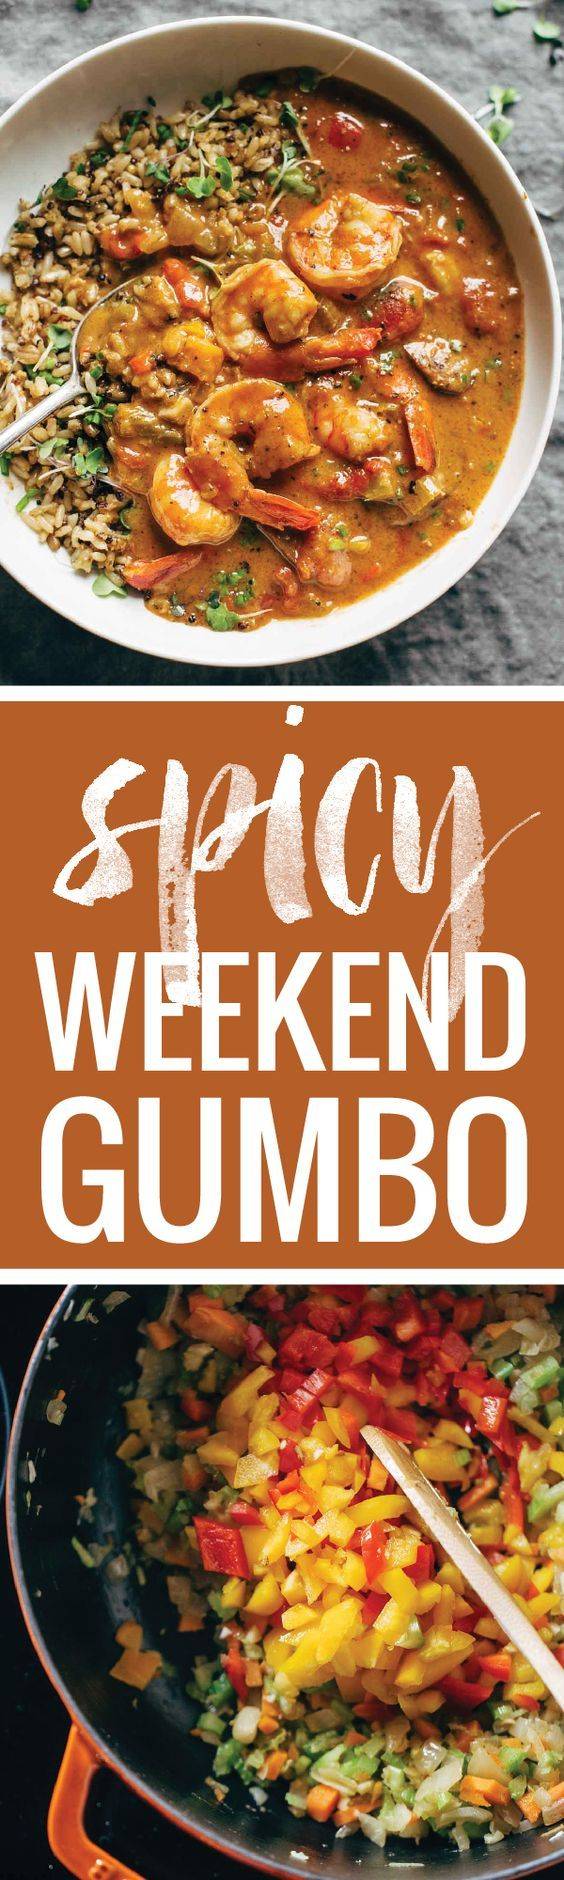 Spicy Weekend Gumbo - Garlic, carrots, celery, onion, tomatoes, flour, butter, shrimp simmered for an hour or two on the weekend to make for awesome meals all week!